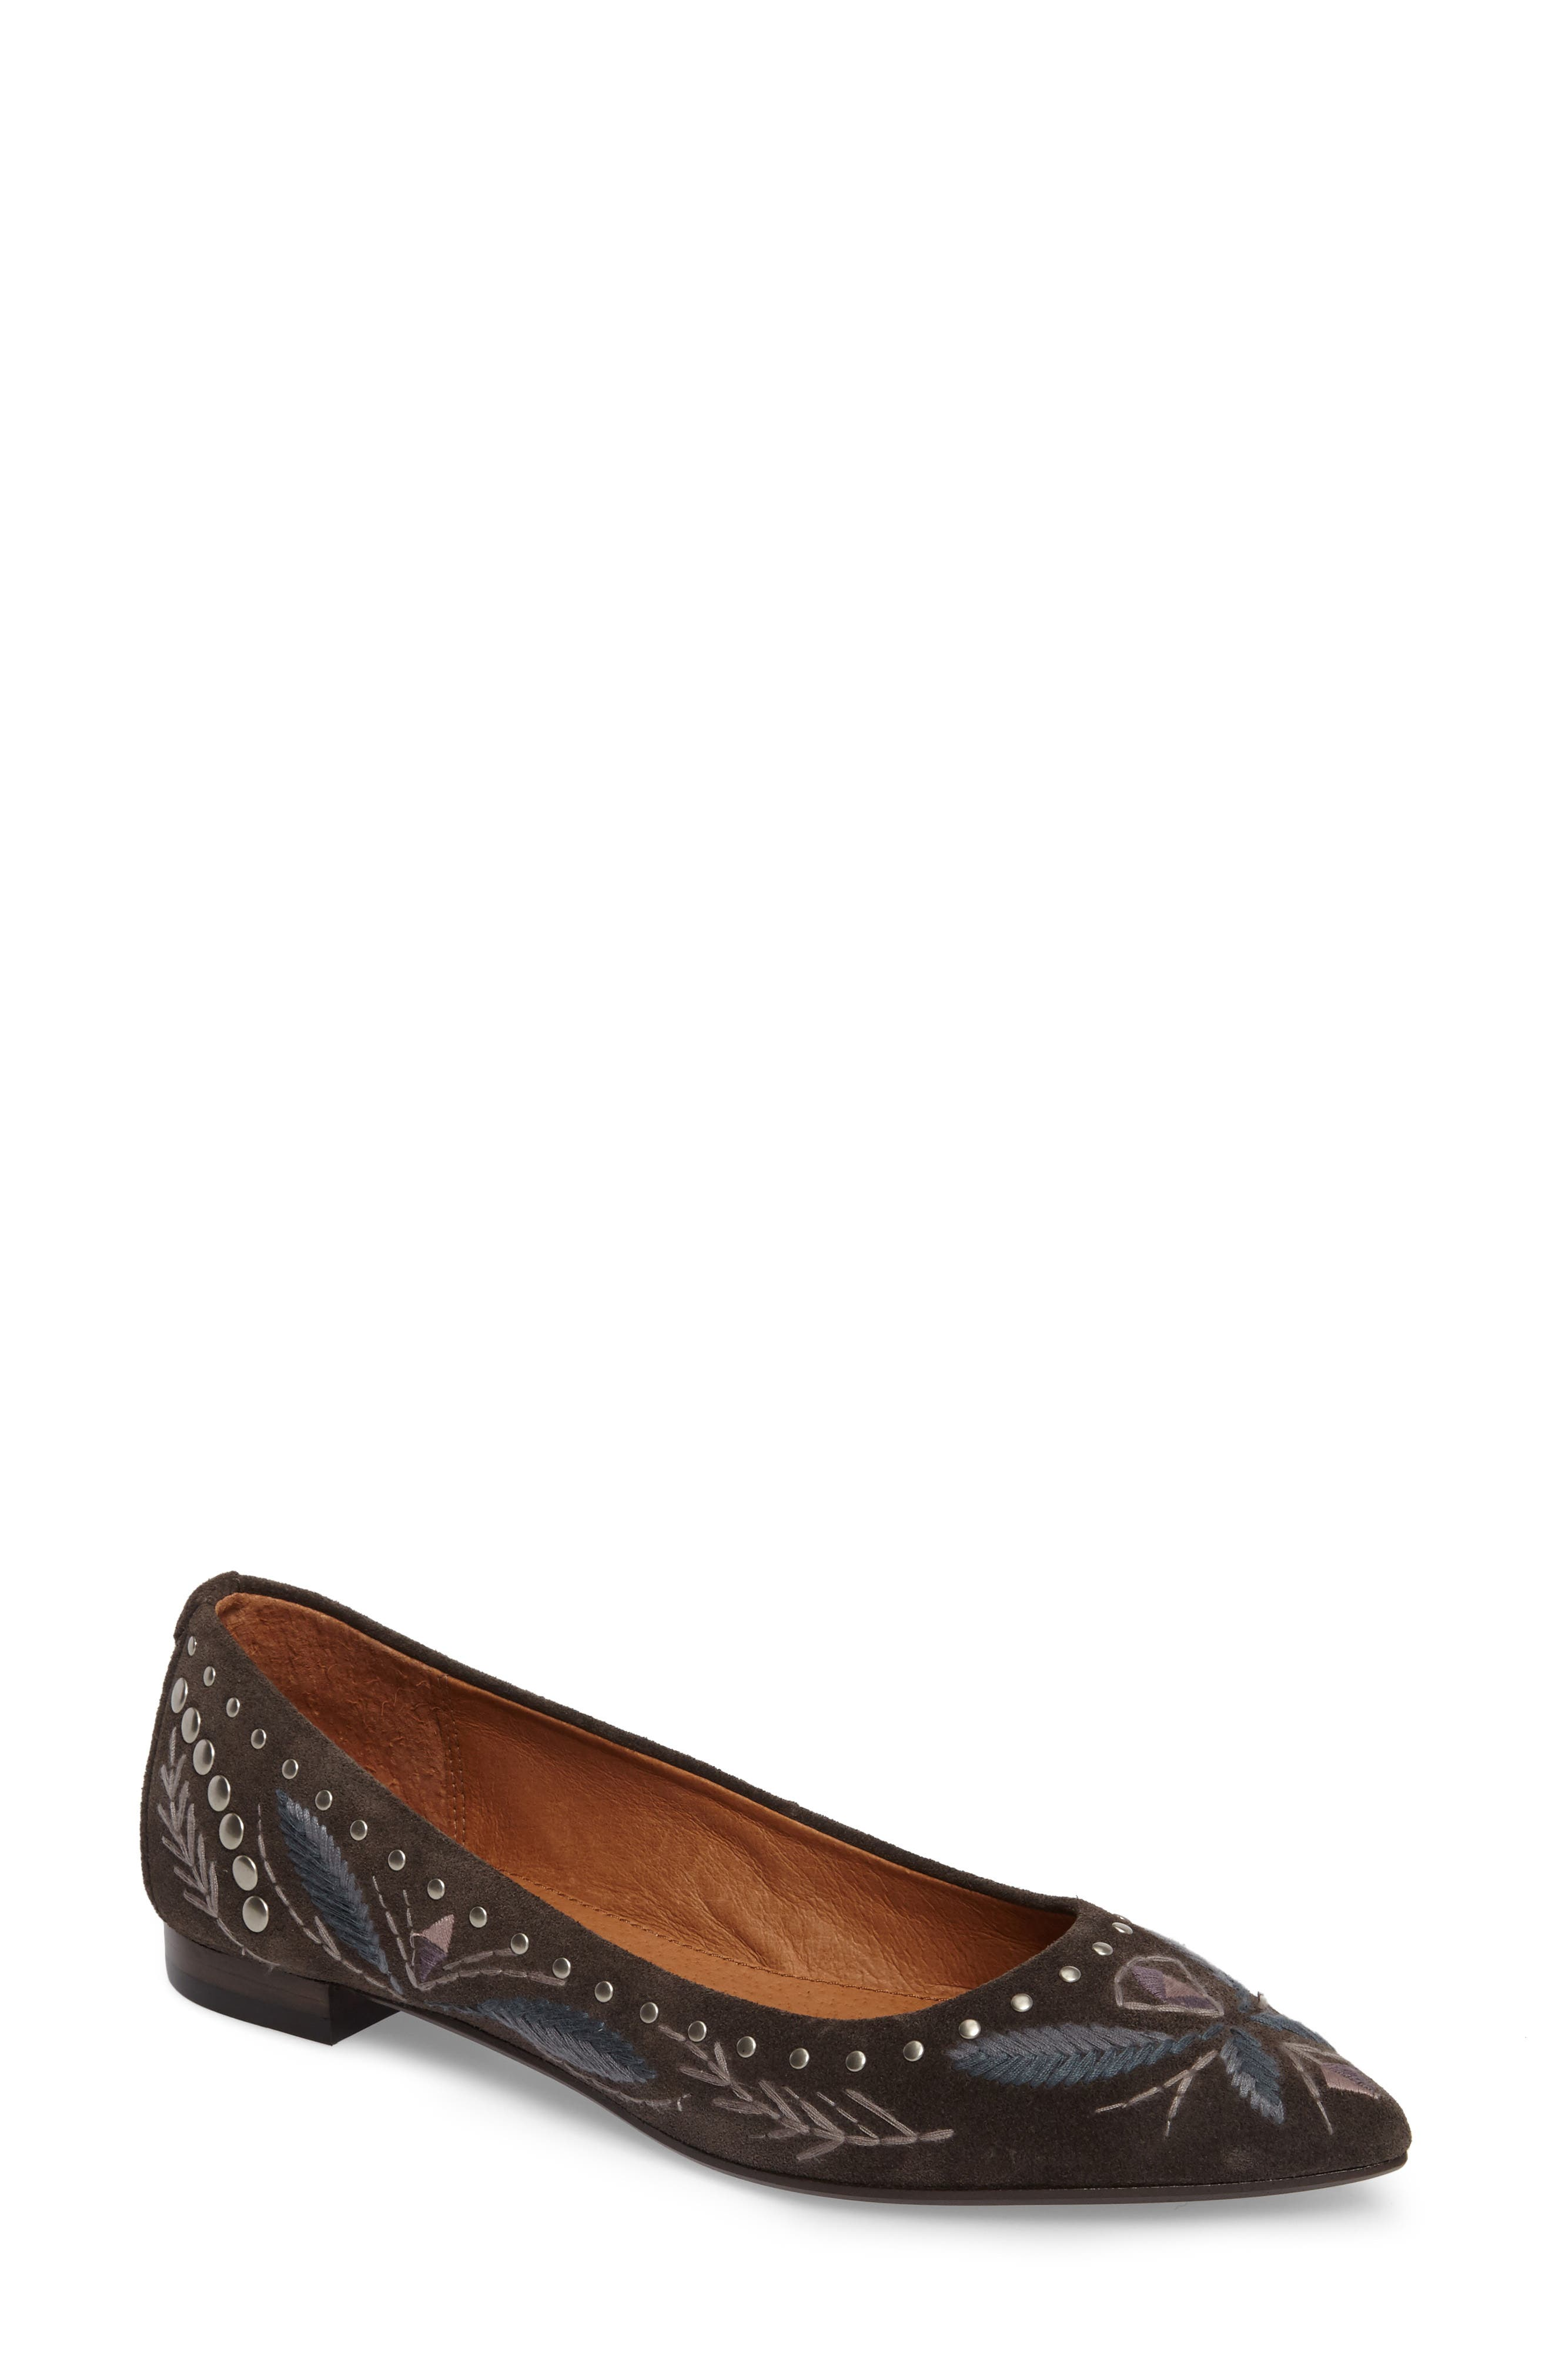 Alternate Image 1 Selected - Frye Sienna Embroidered Ballet Flat (Women)